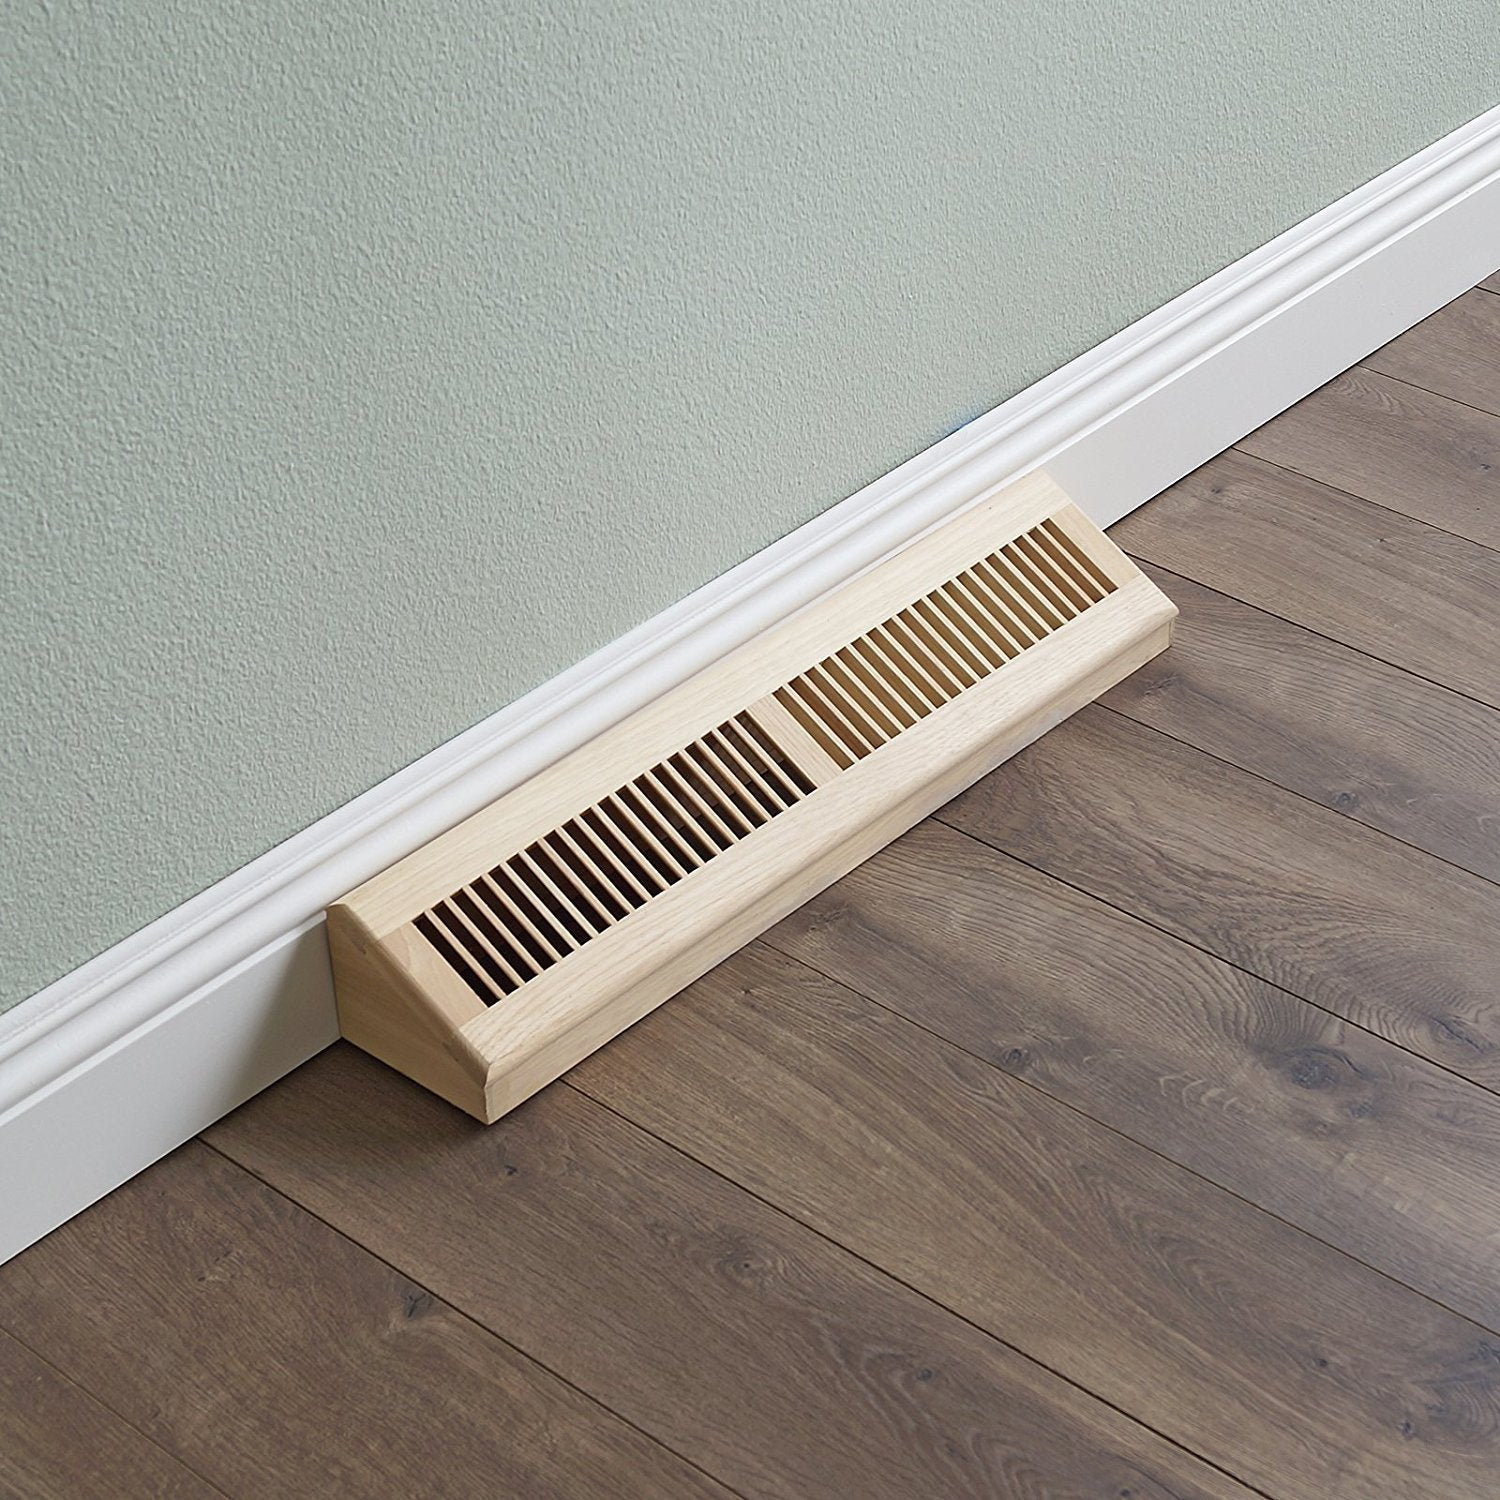 Picture of: Baseboard Diffuser Wall Register Unfinished Baseboard Diffuser Vent Hickory Wellandstore